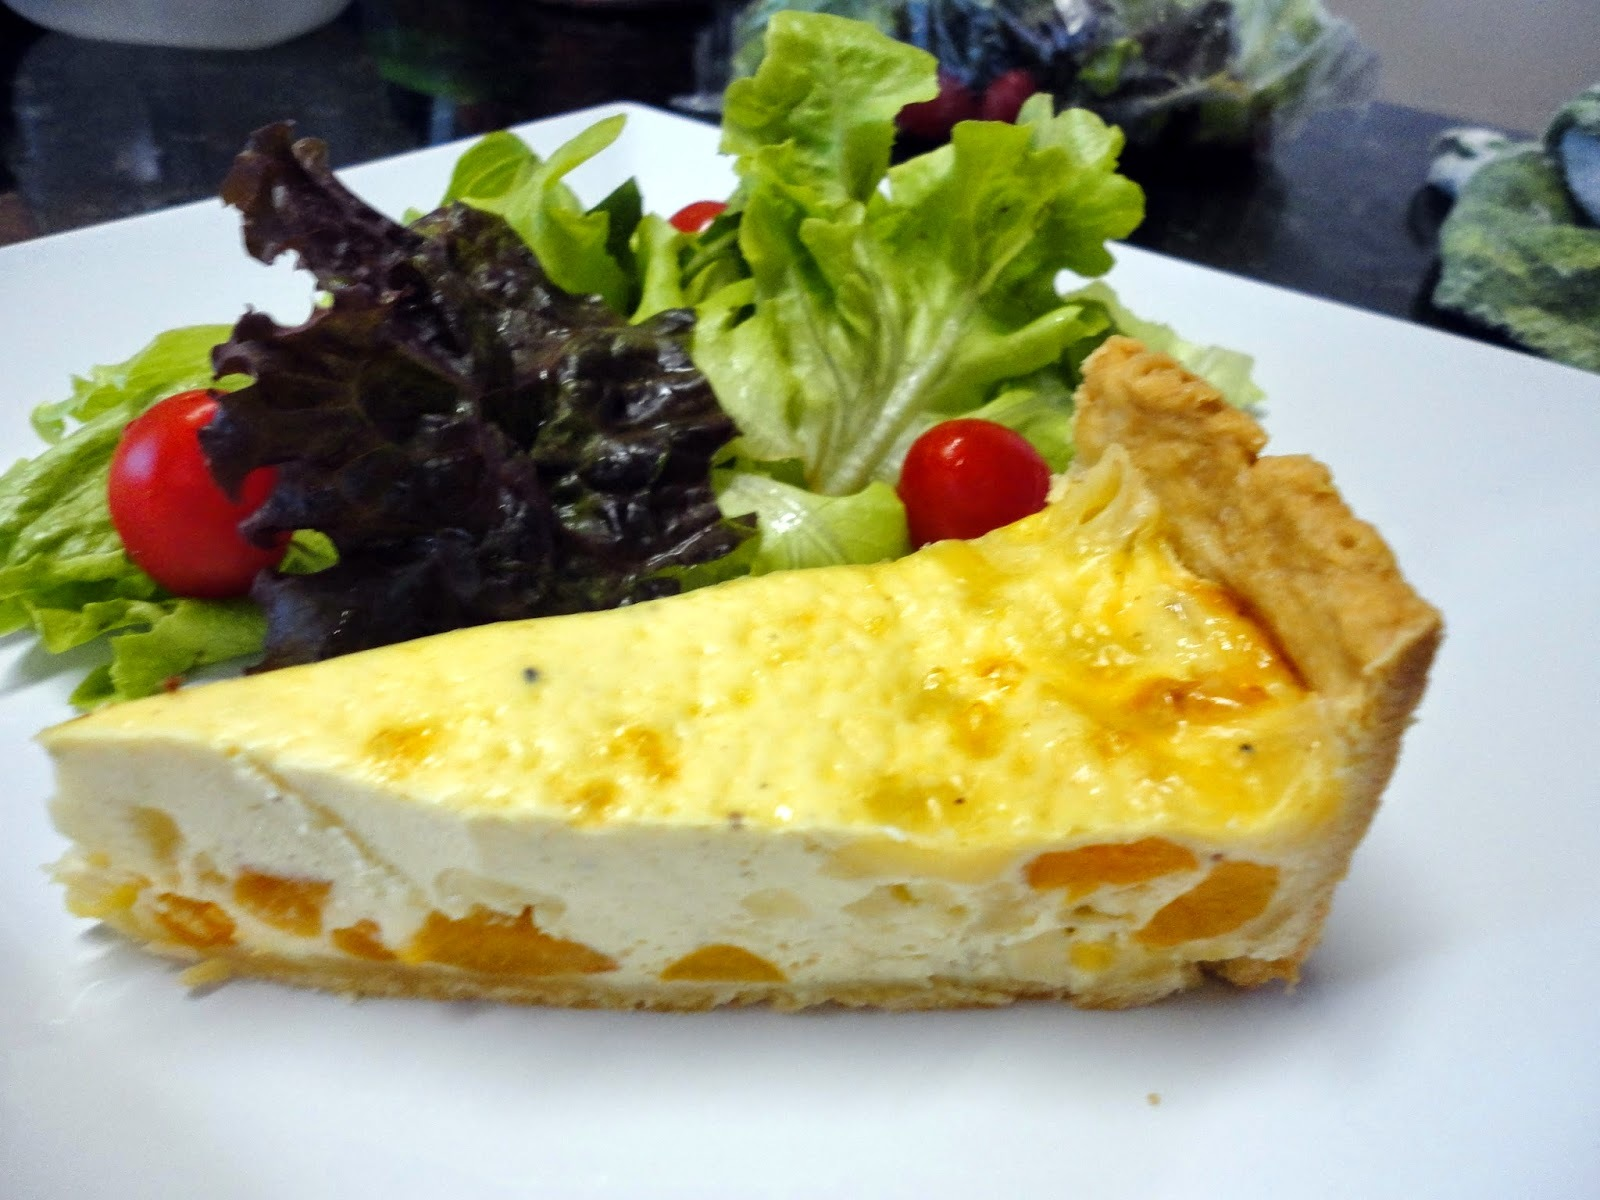 quiche de queijo brie com damasco